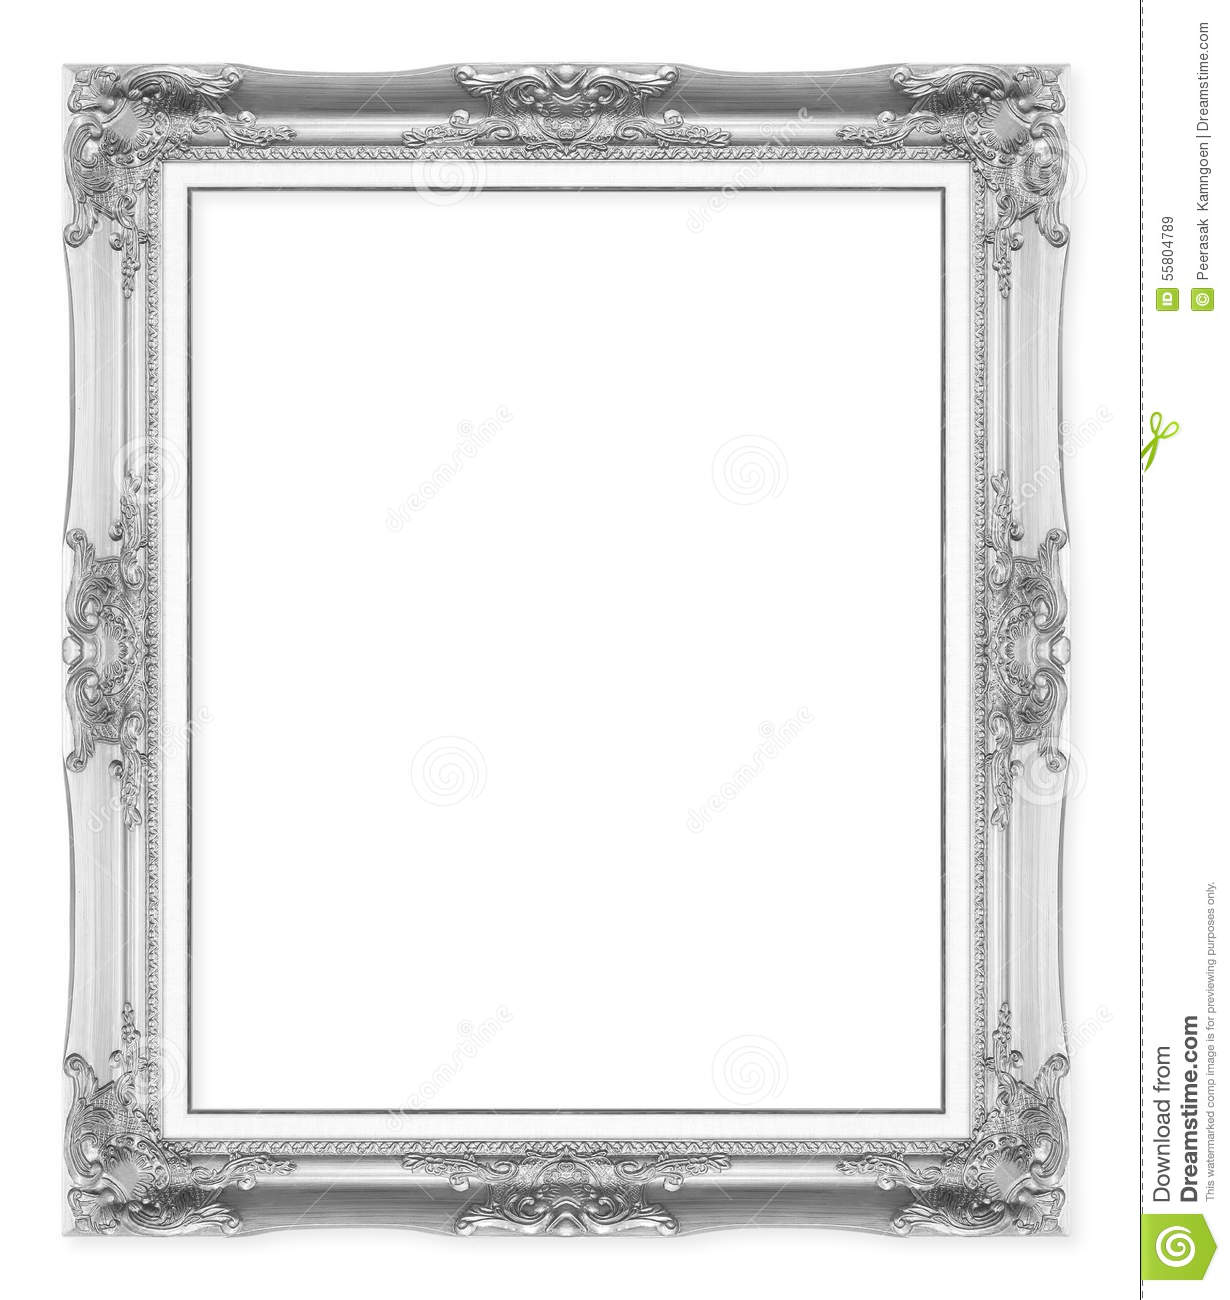 Silver Antique Picture Frames images